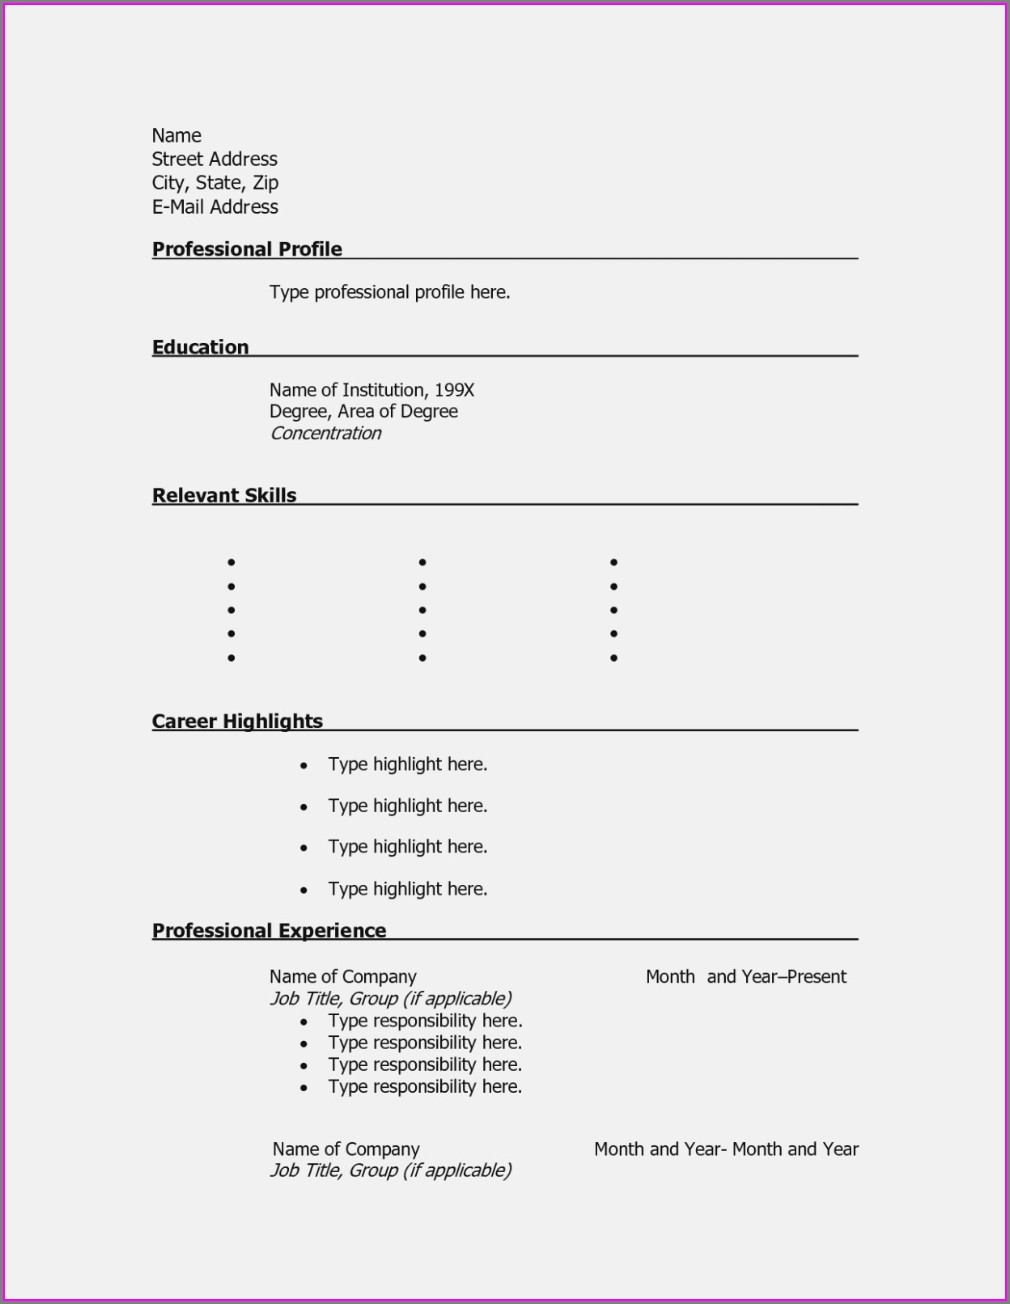 Online Resume Templates Microsoft Word